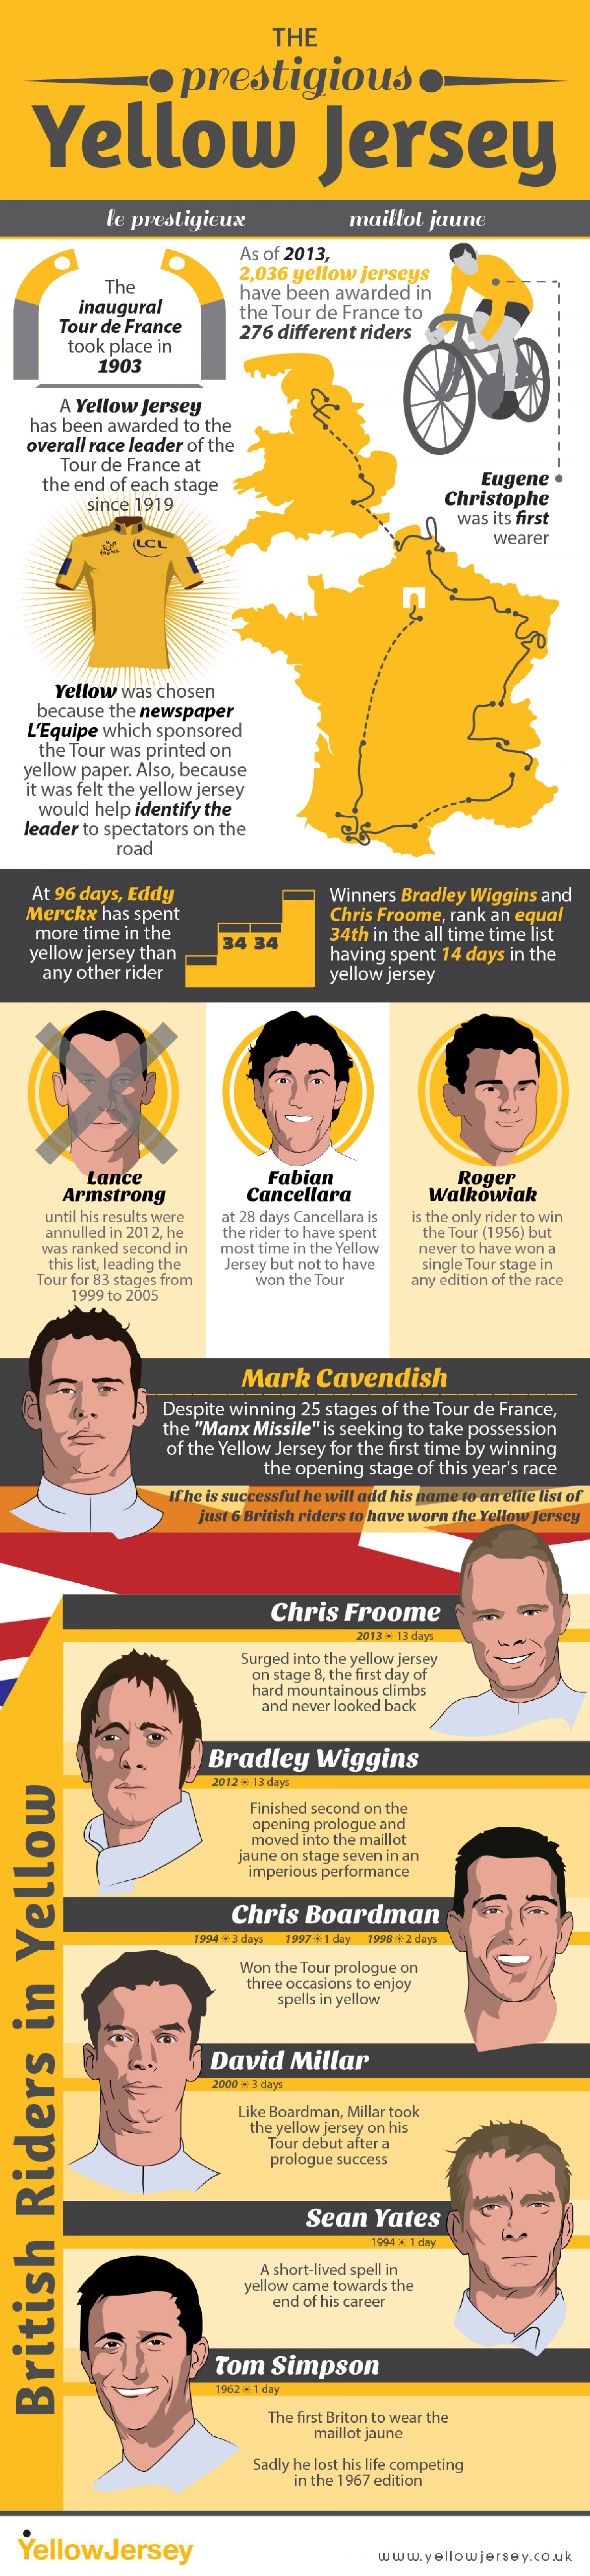 The Prestigious Yellow Jersey Infographic